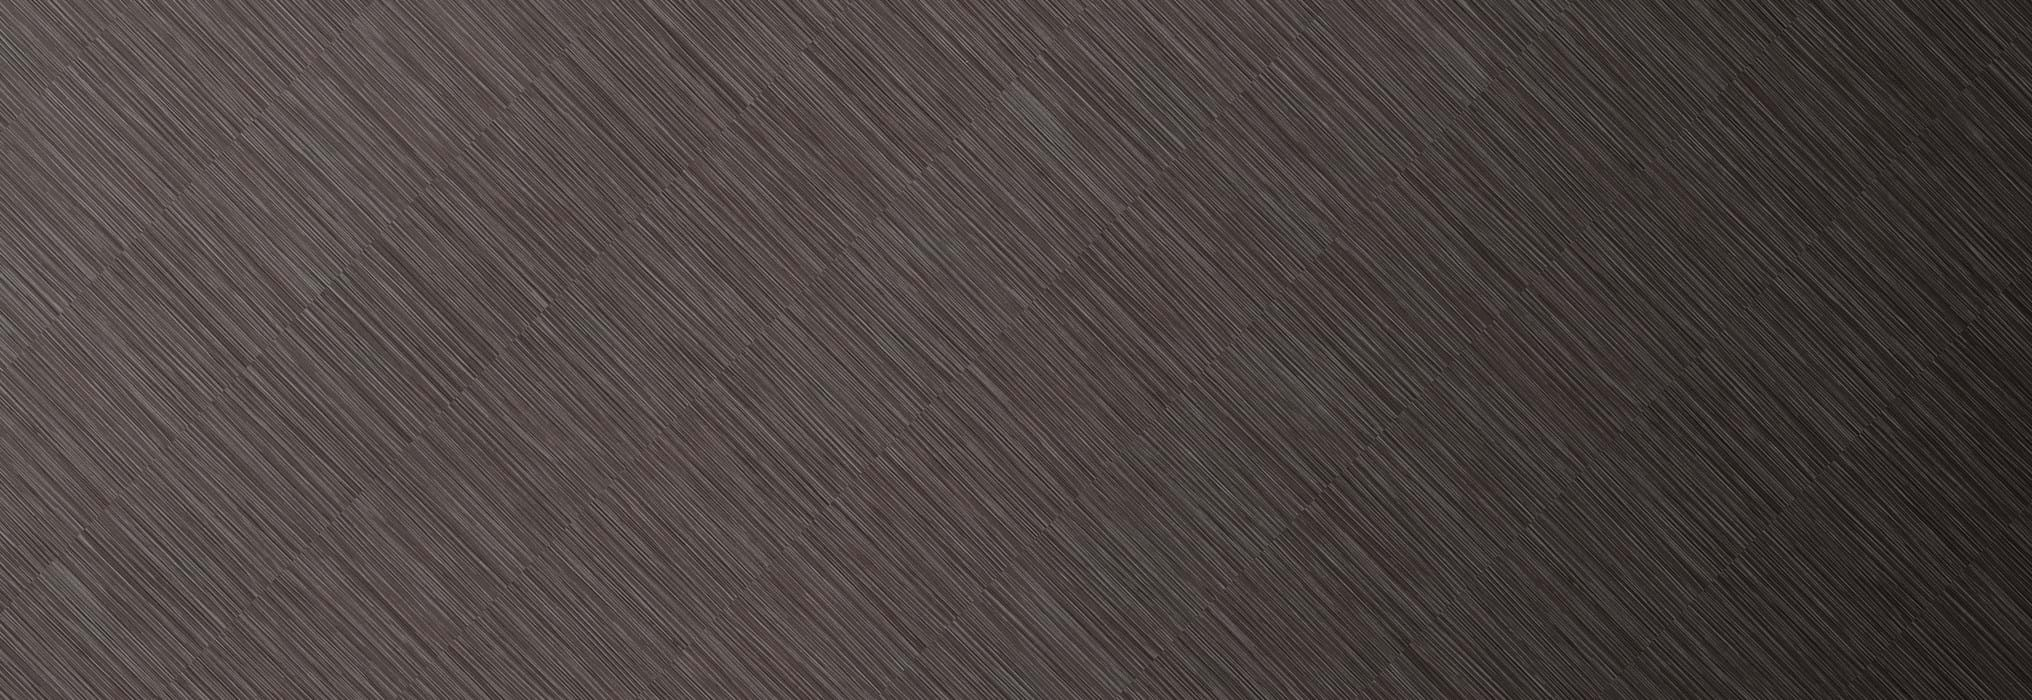 Amtico International: Linear Metallic Steel - AM5ALA21